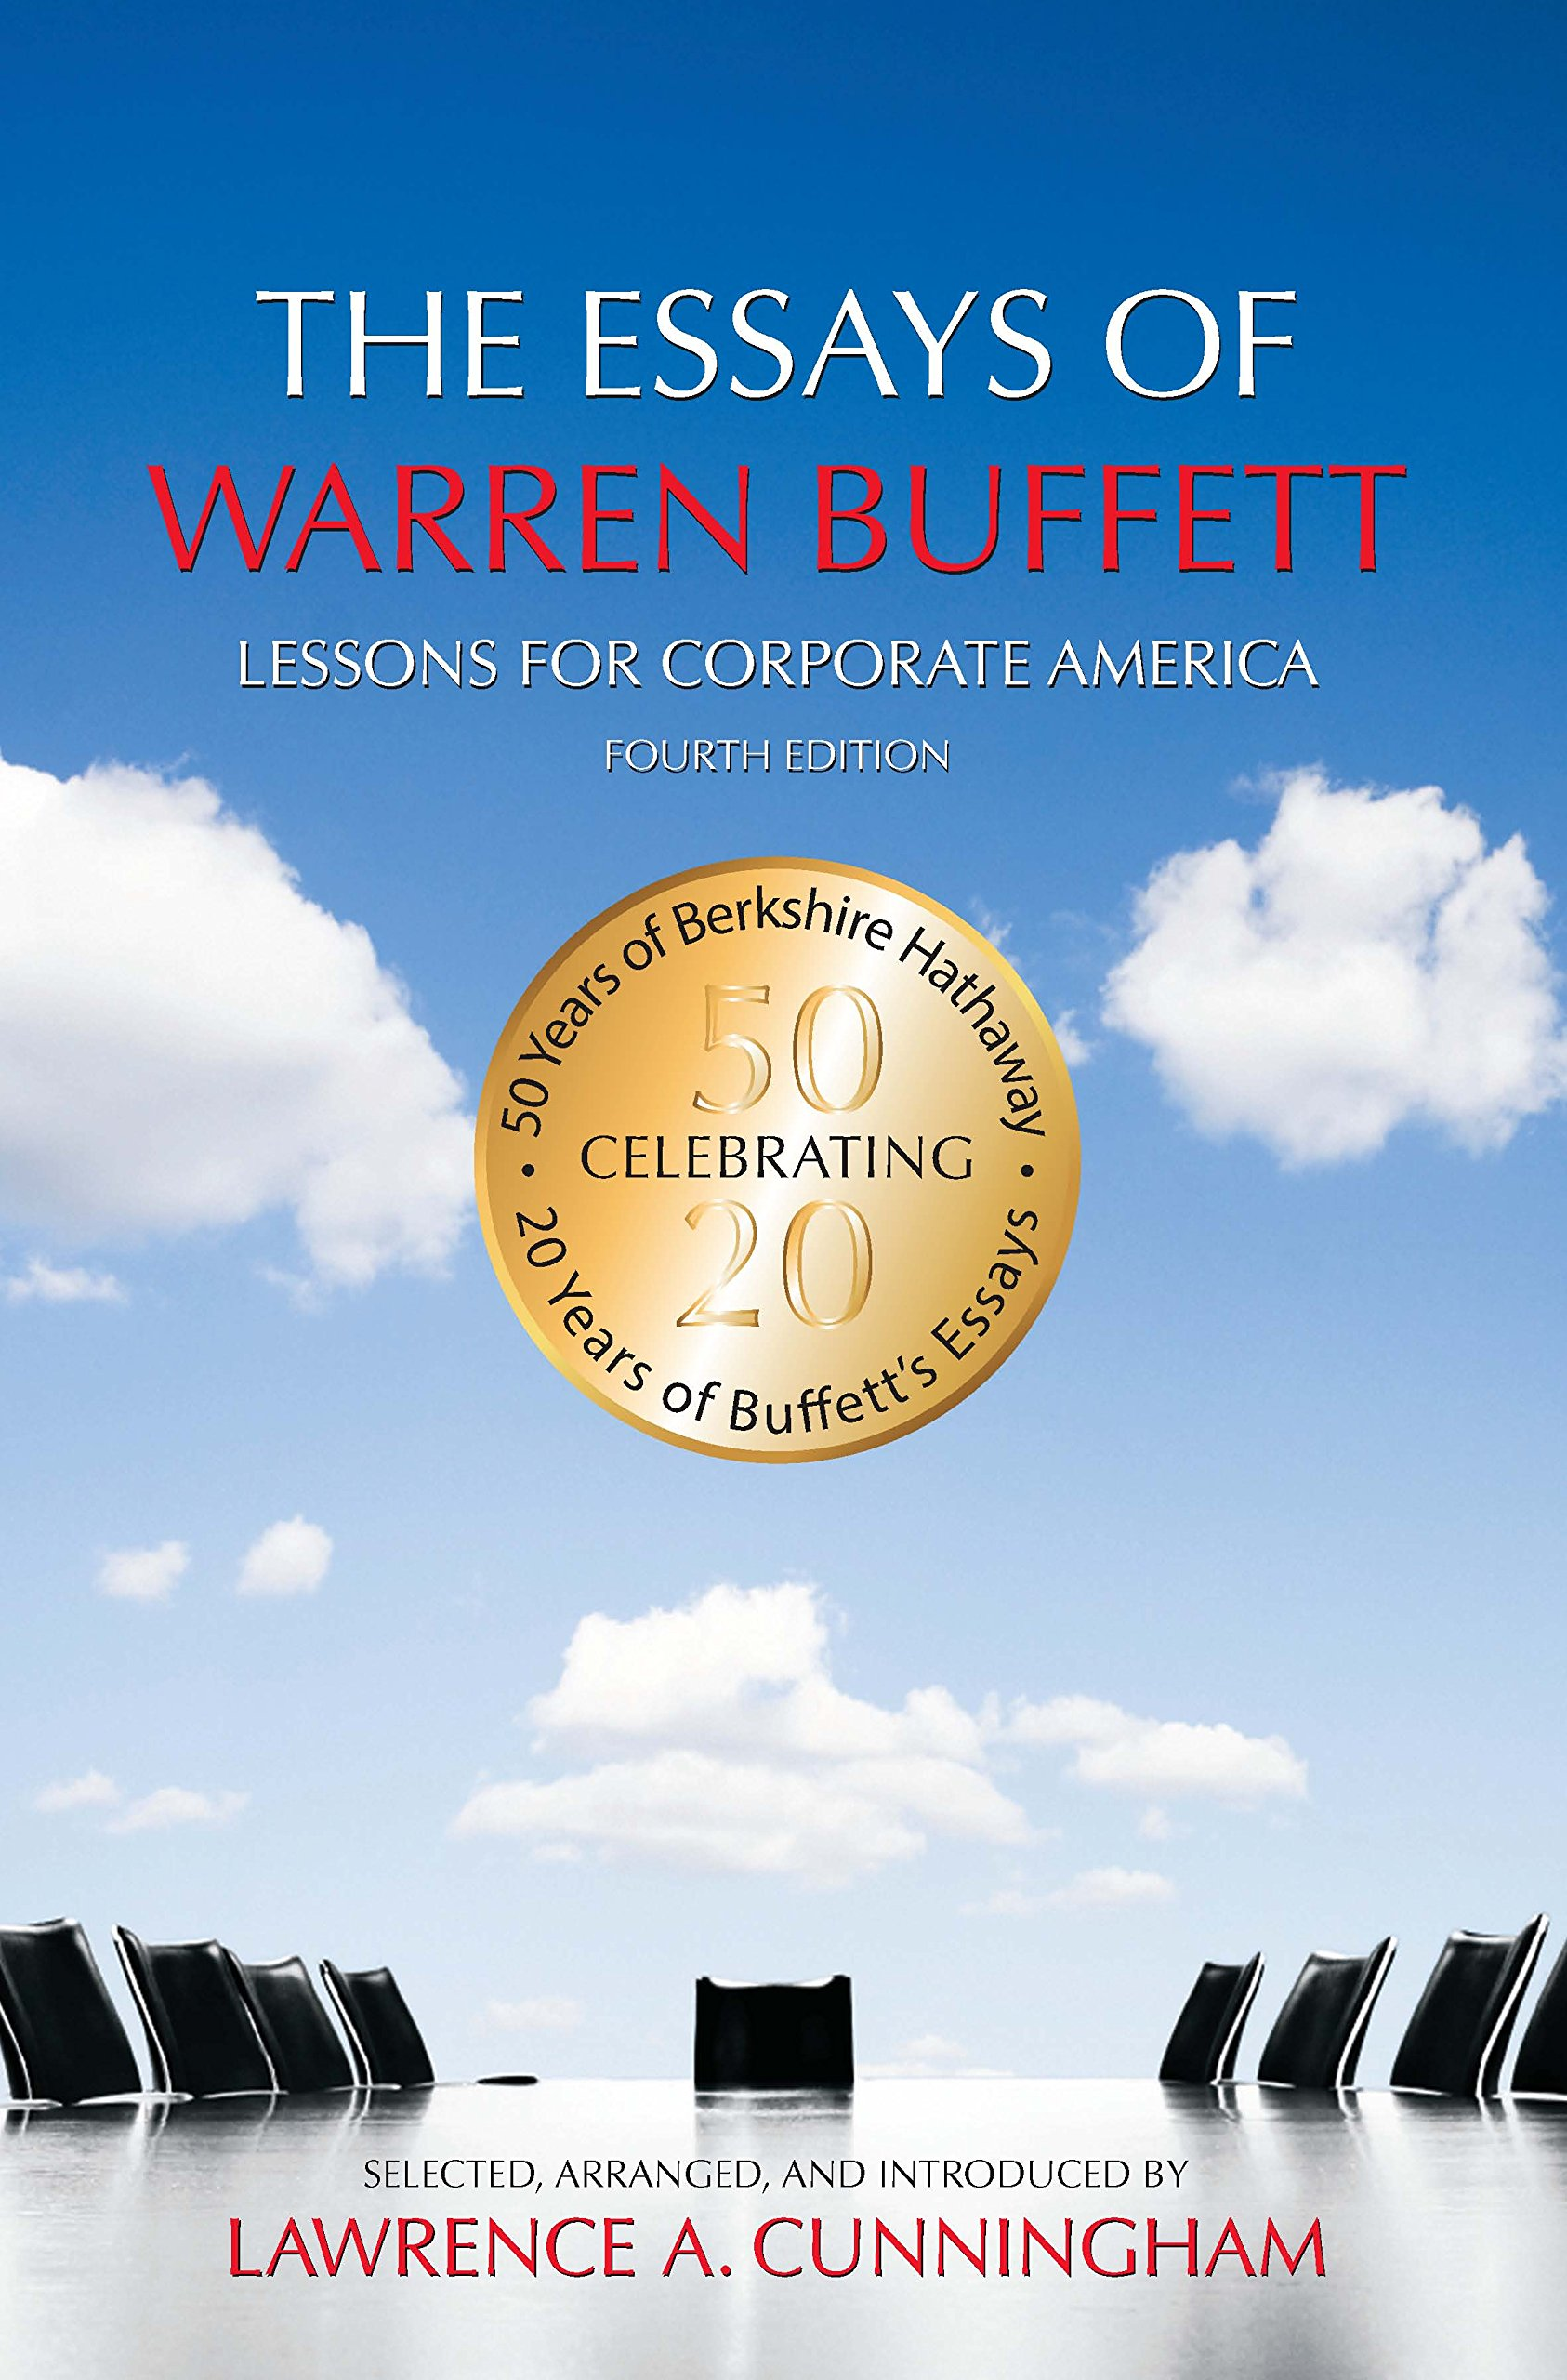 001 Essay Example The Essays Of Warren Buffett Stirring Pages Audiobook Download Summary Full